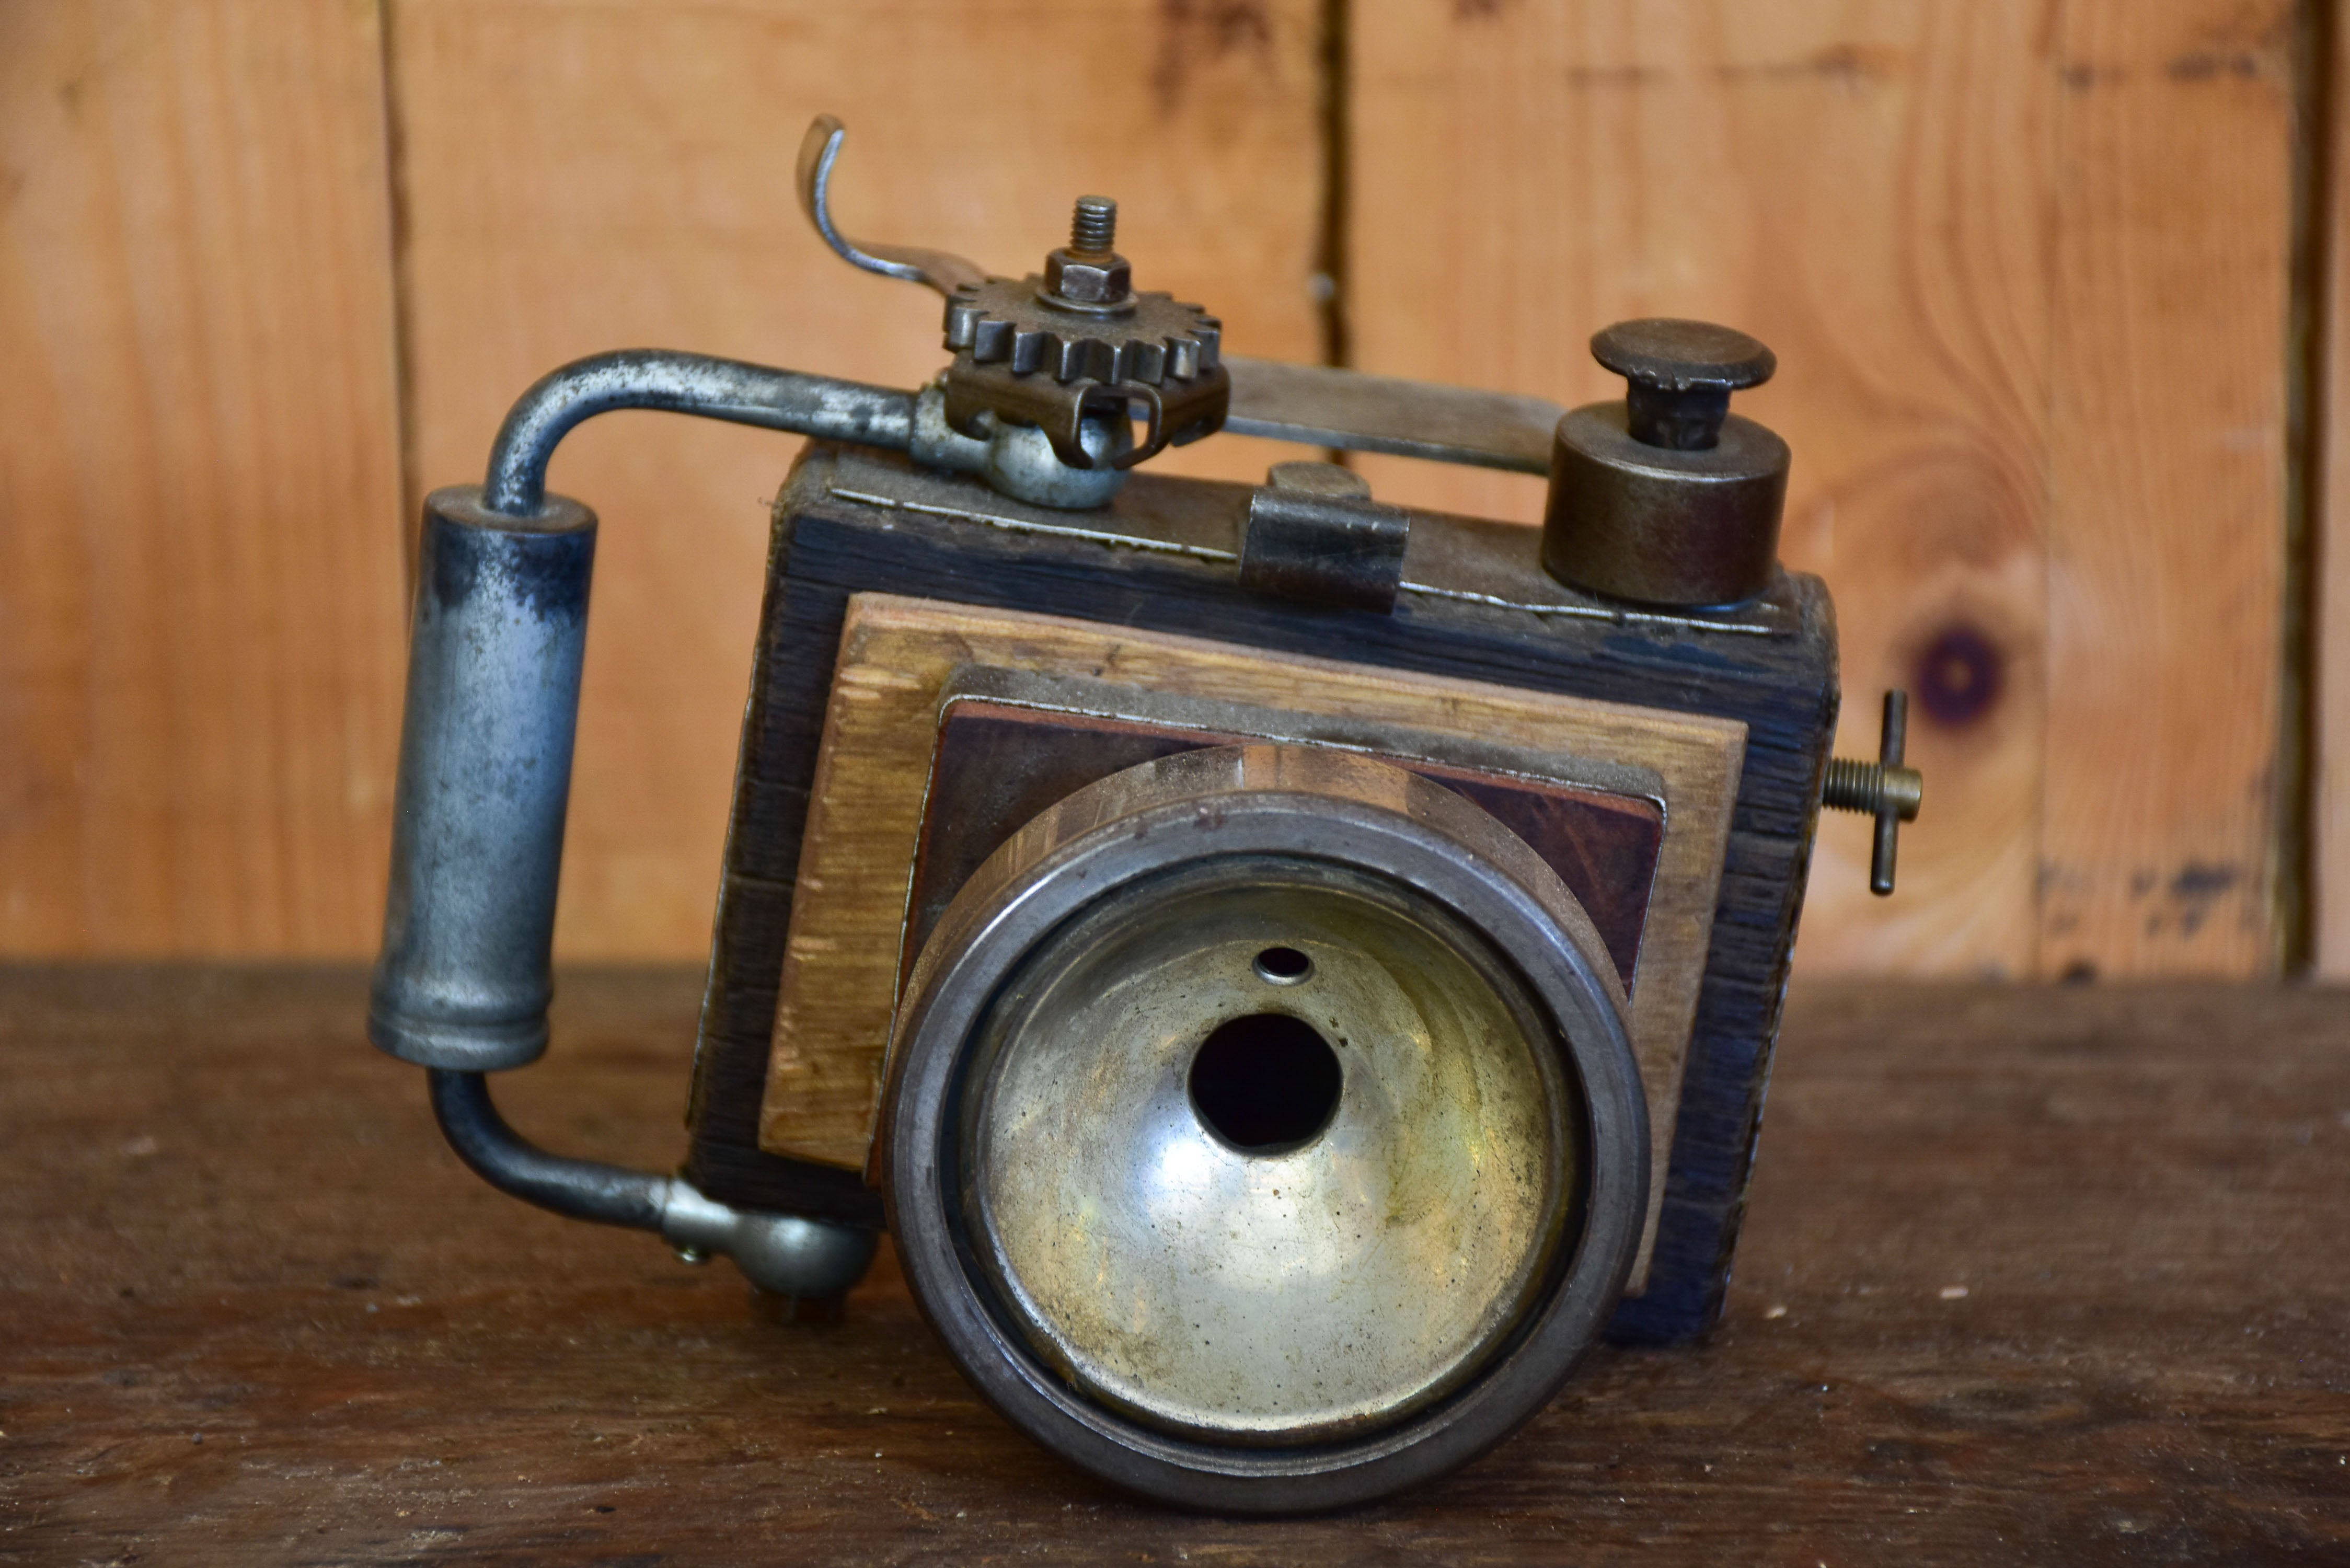 Sculpture of a camera by Bertrand Momb